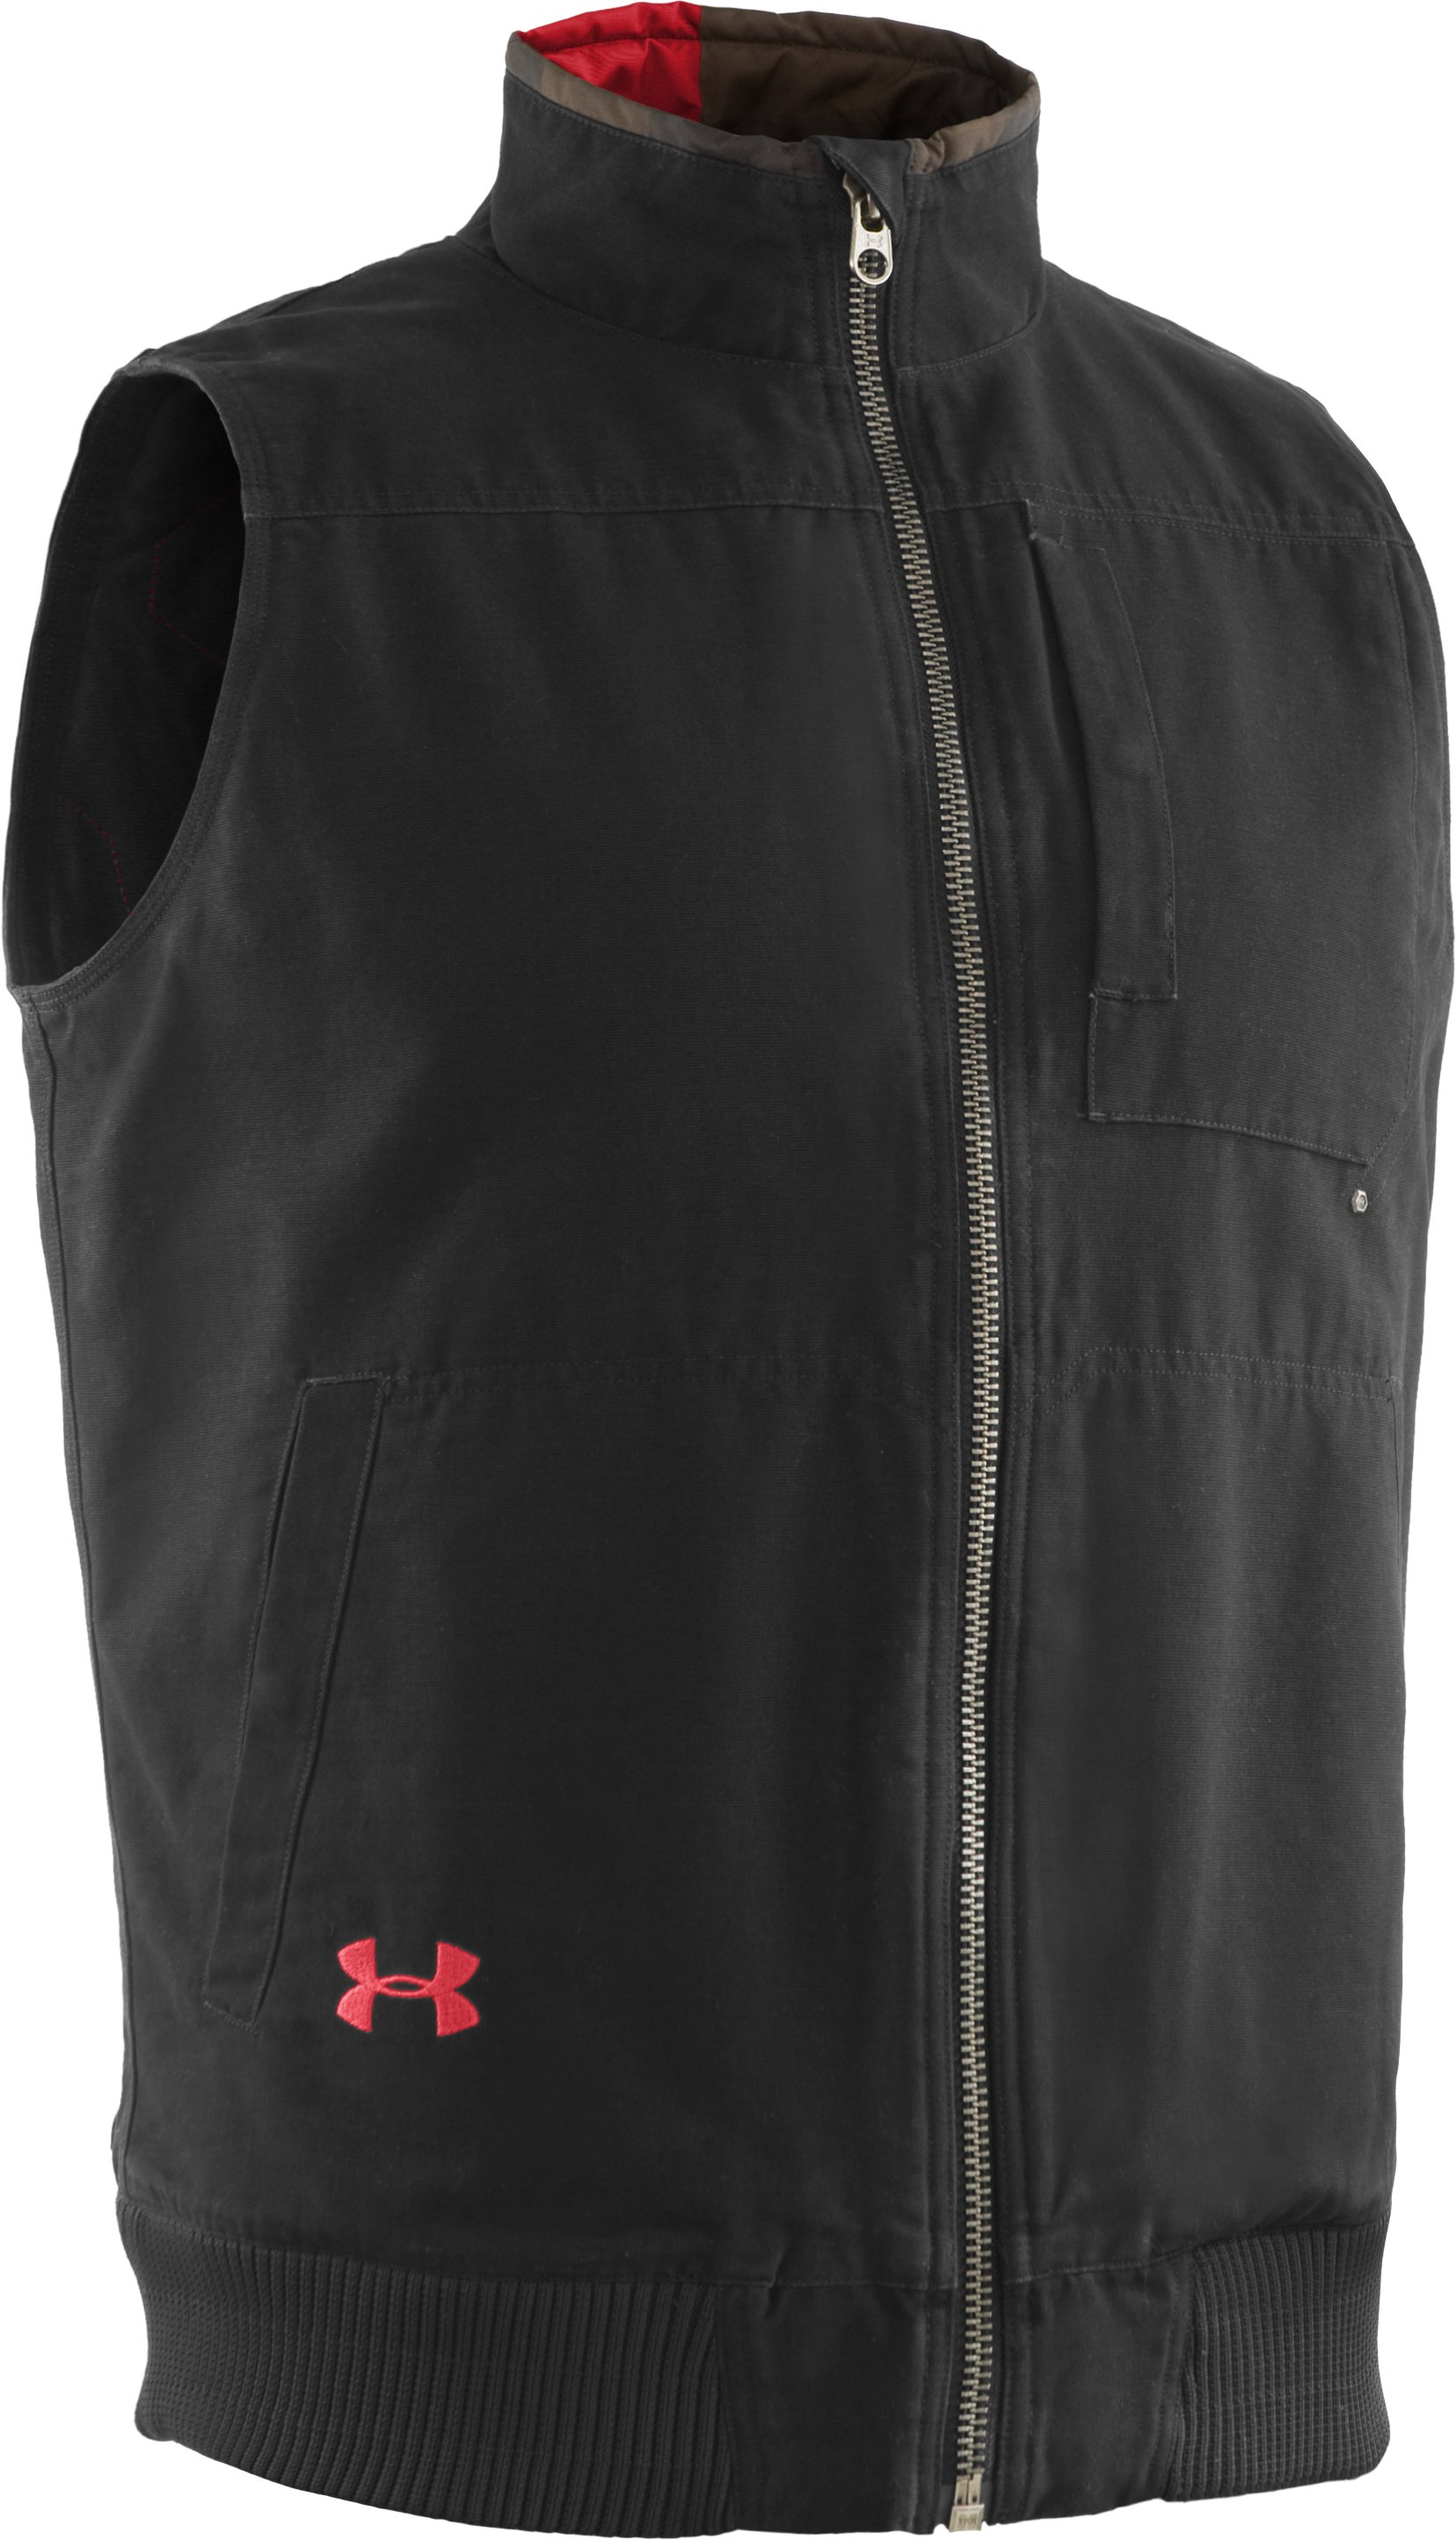 Men's Quilted Vest, Black